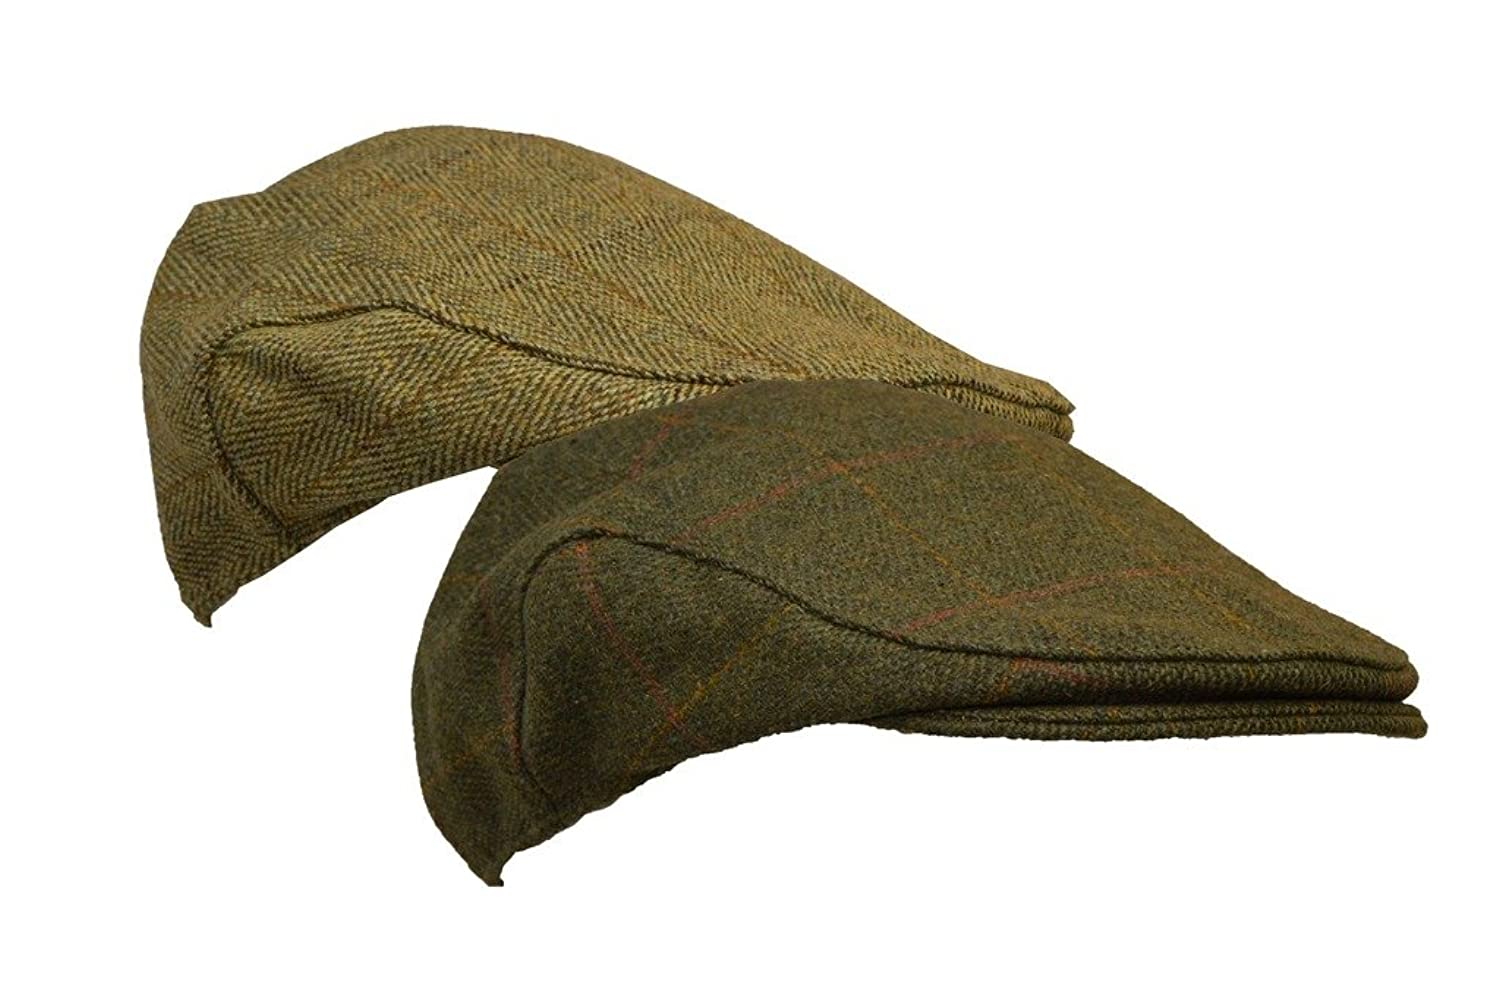 1efb8c99 1930s Style Mens Hats and Caps Derby Tweed Flat Cap Hunting Shooting  Countrywear Hat $22.02 AT